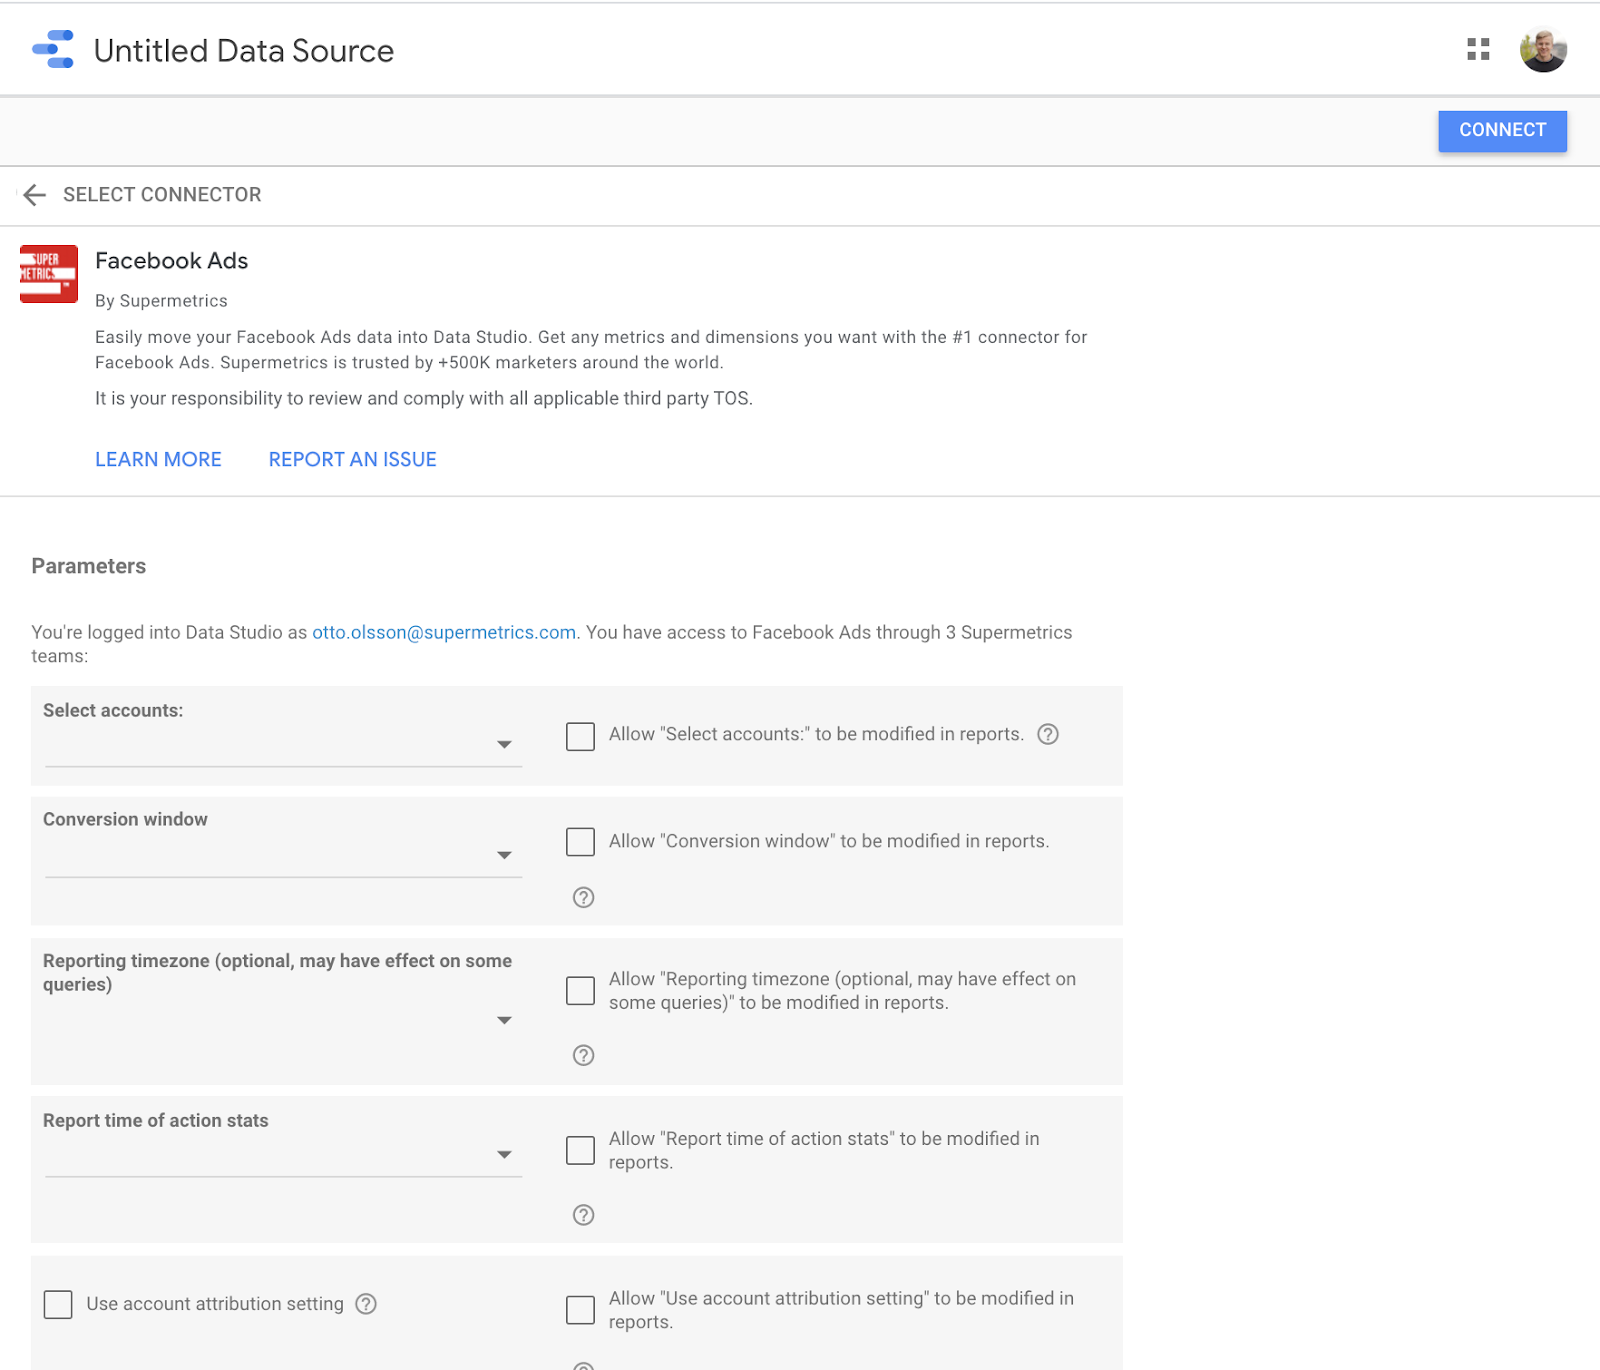 connect data source, facebook ads, to google data studio parameters view